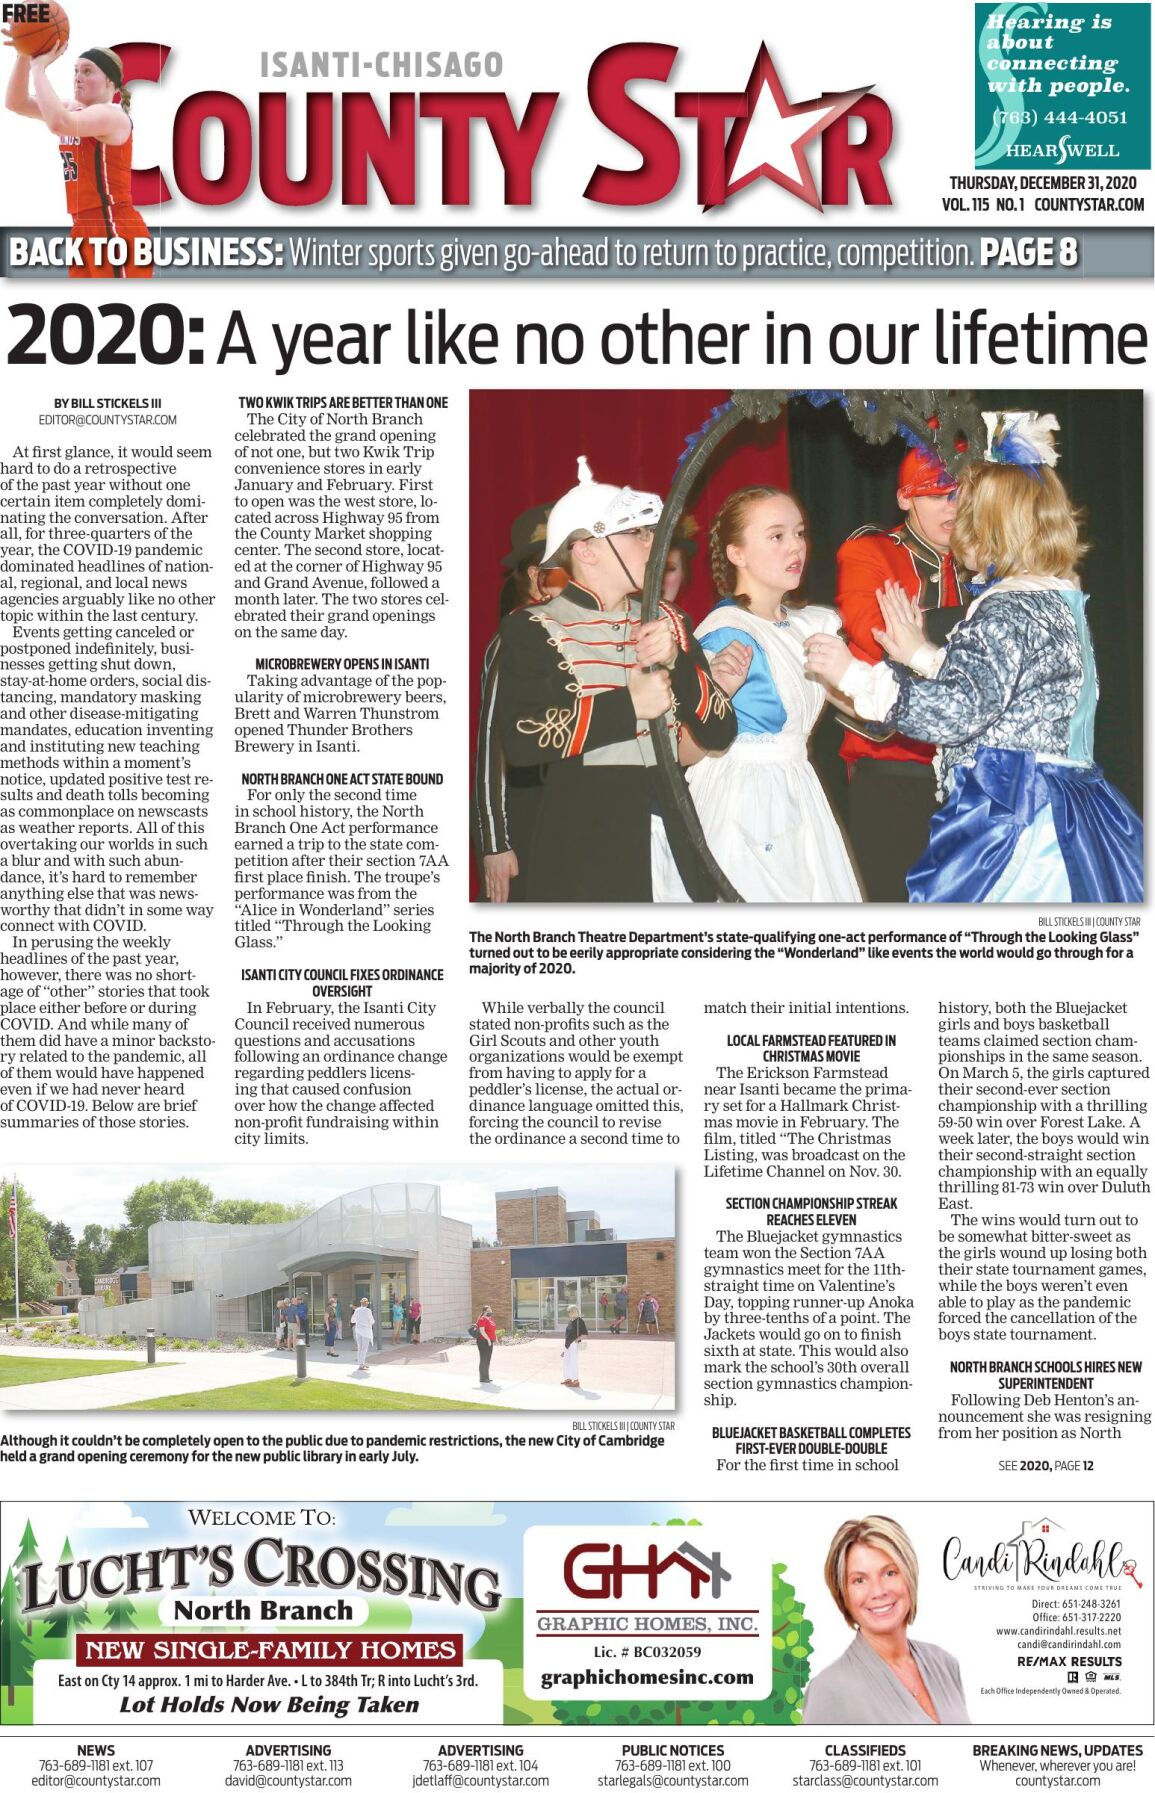 Isanti-Chisago County Star December 31, 2020 e-edition